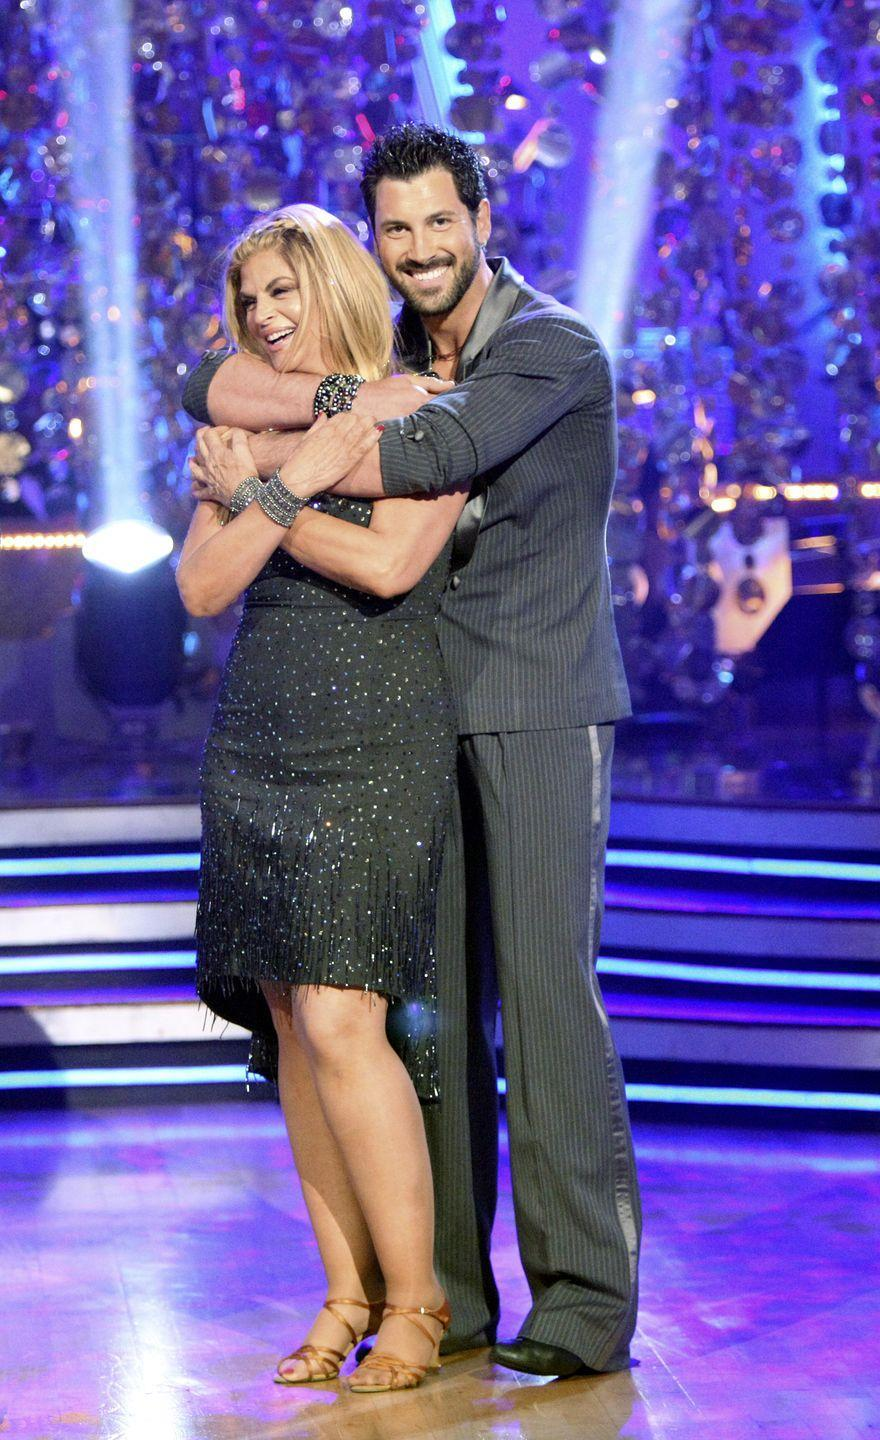 <p>Kirstie and Maksim developed a close bond throughout their season together. But in 2014, Maksim revealed that he and Kirstie had a falling out and it had to do with his ties to former Scientologist, Leah Remini.</p>